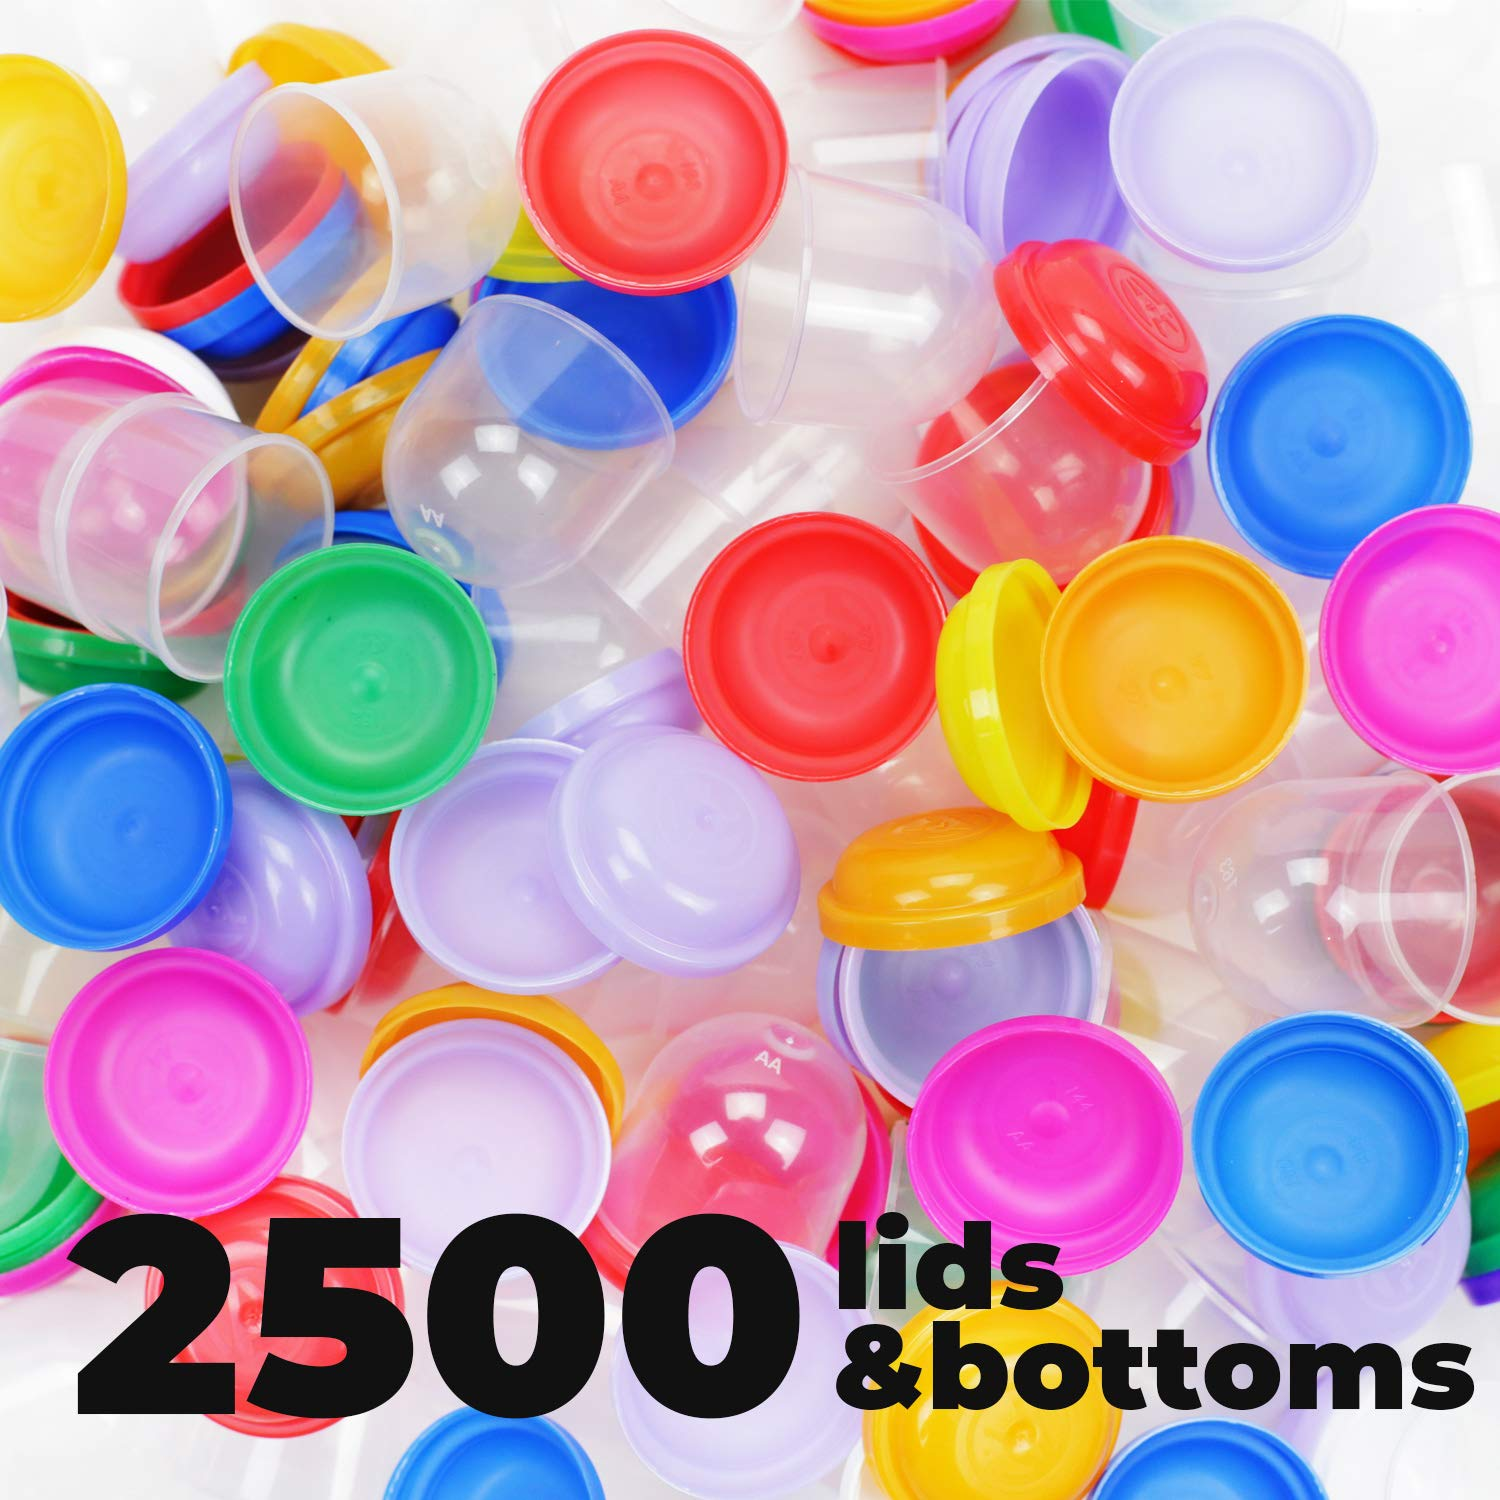 Toy Empty Capsules 1.1'' 2500 pcs Bulk 8 COLORS Acorn Capsule for Toy Gumball Machines Small Clear Containers Surprise for Kids Party Favor Prize Colorful Plastic Container Storage for Toys by Entervending (Image #3)